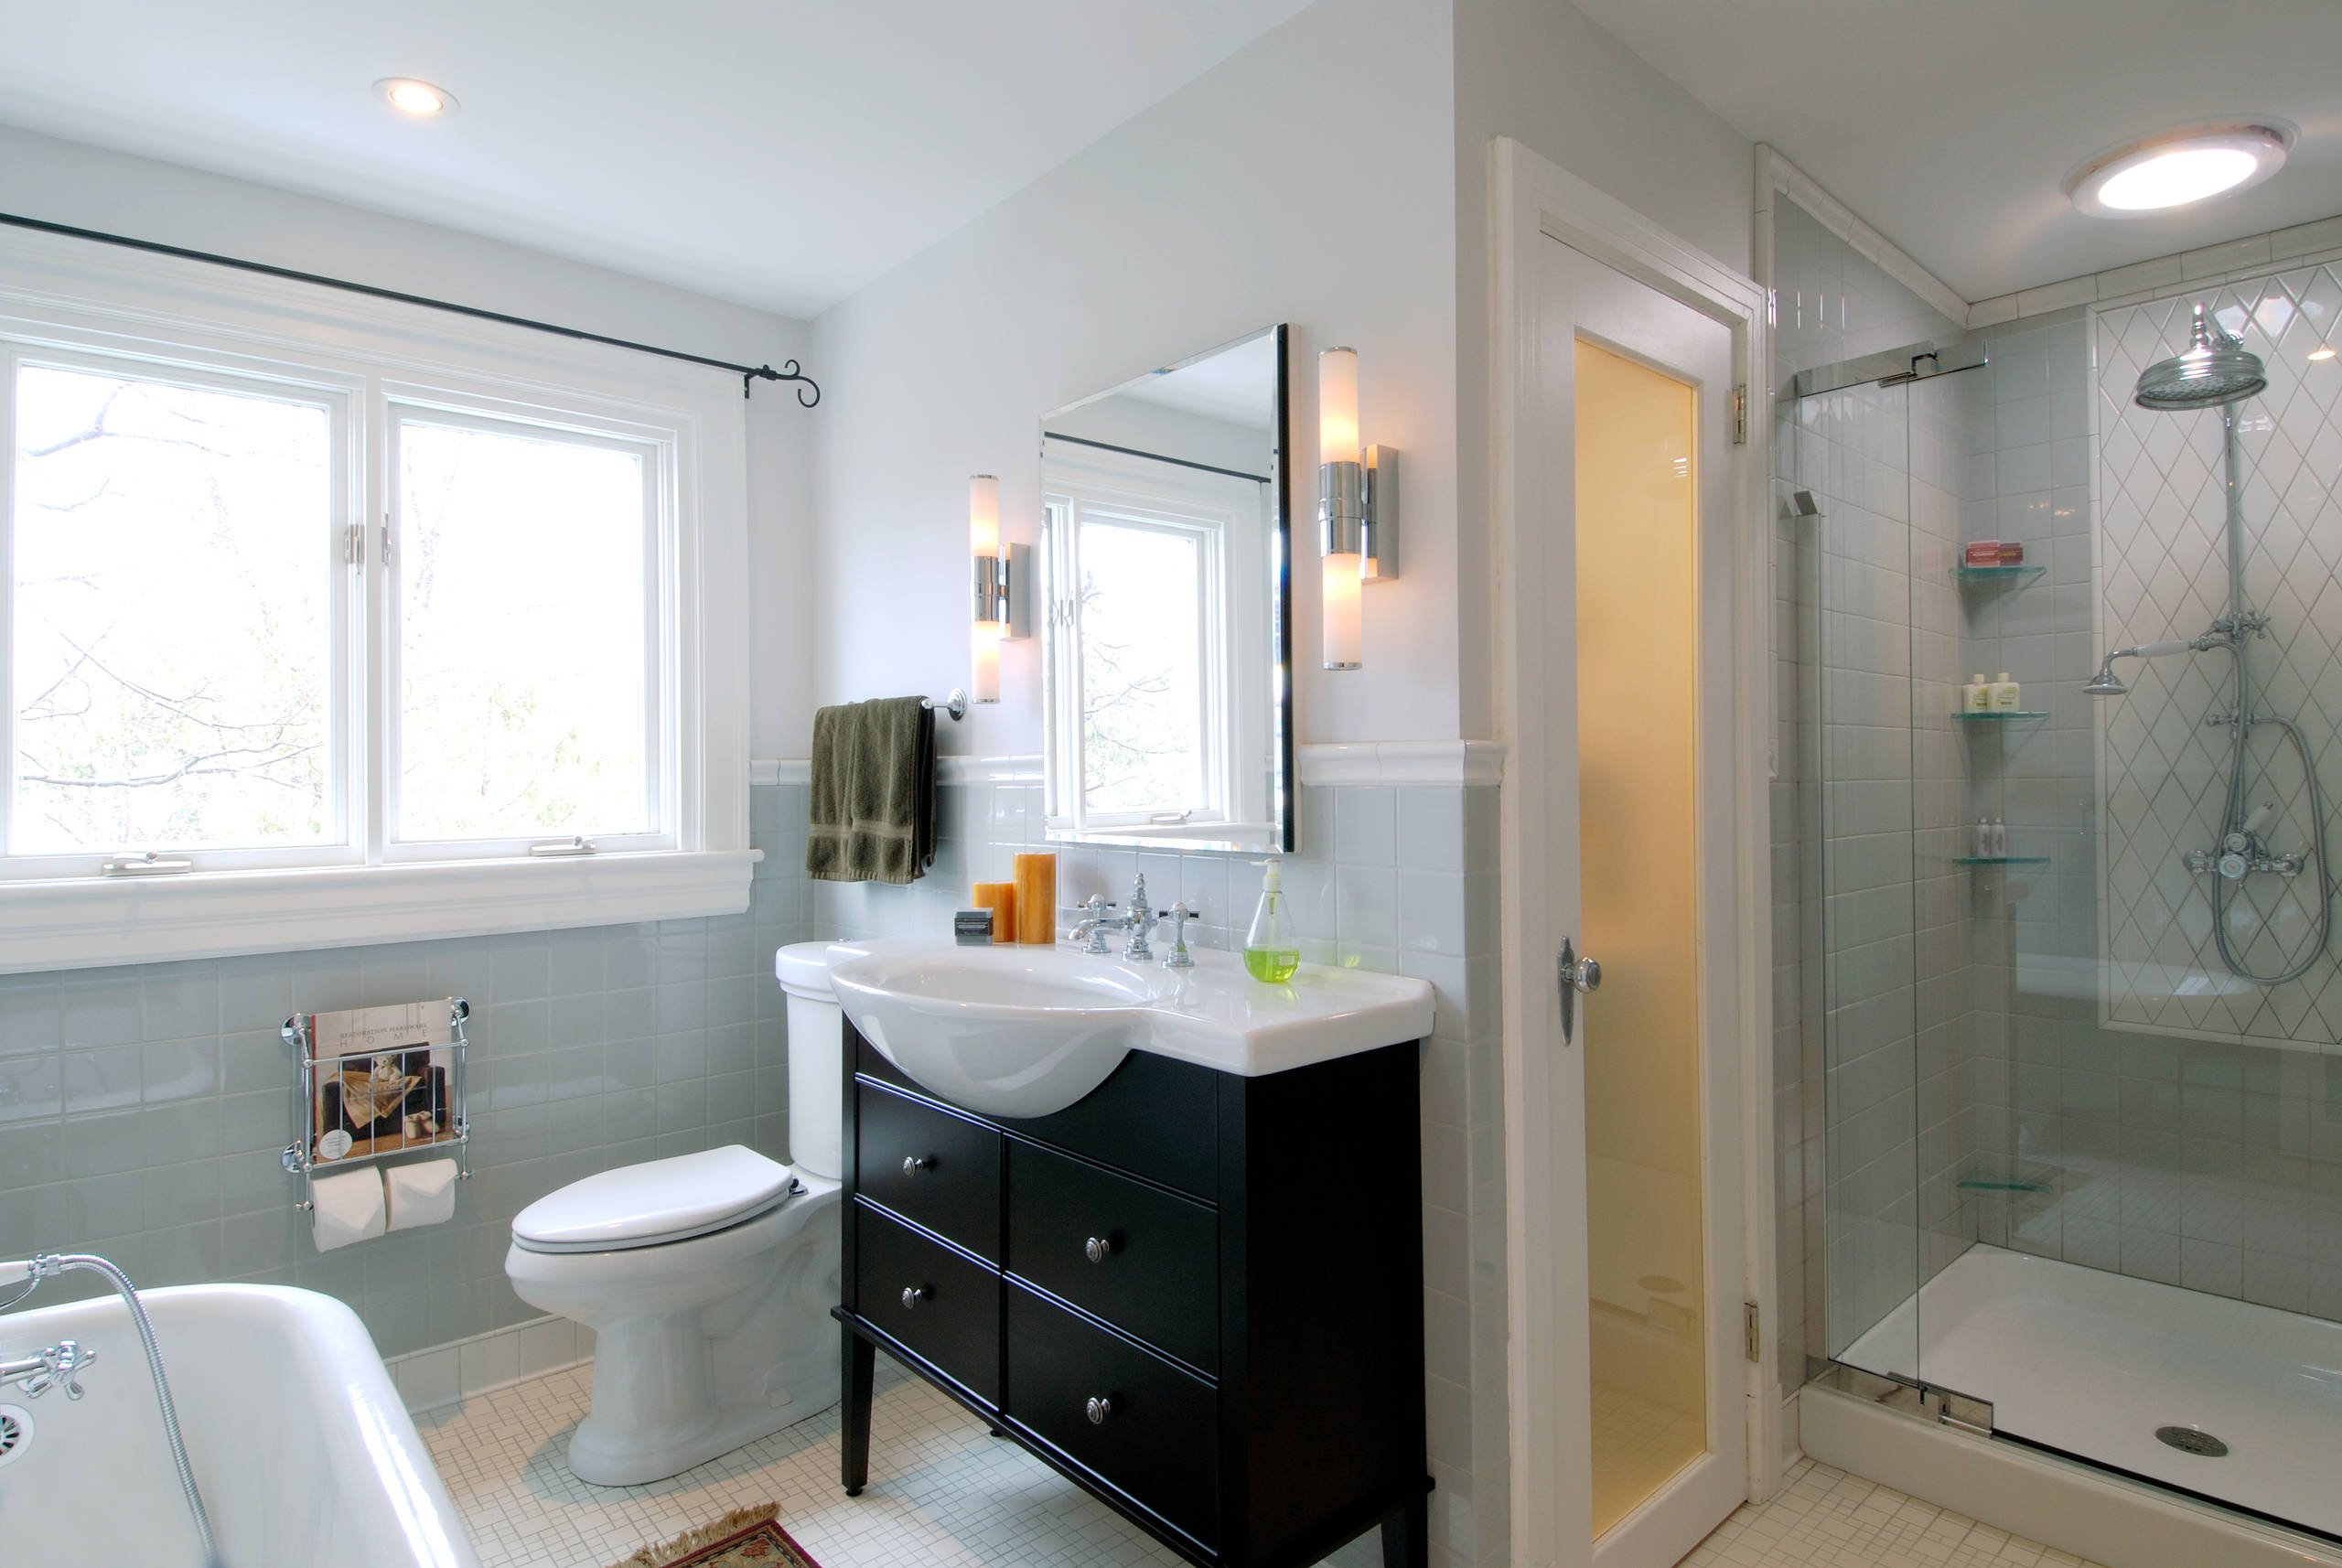 Bathroom Mirror Designs